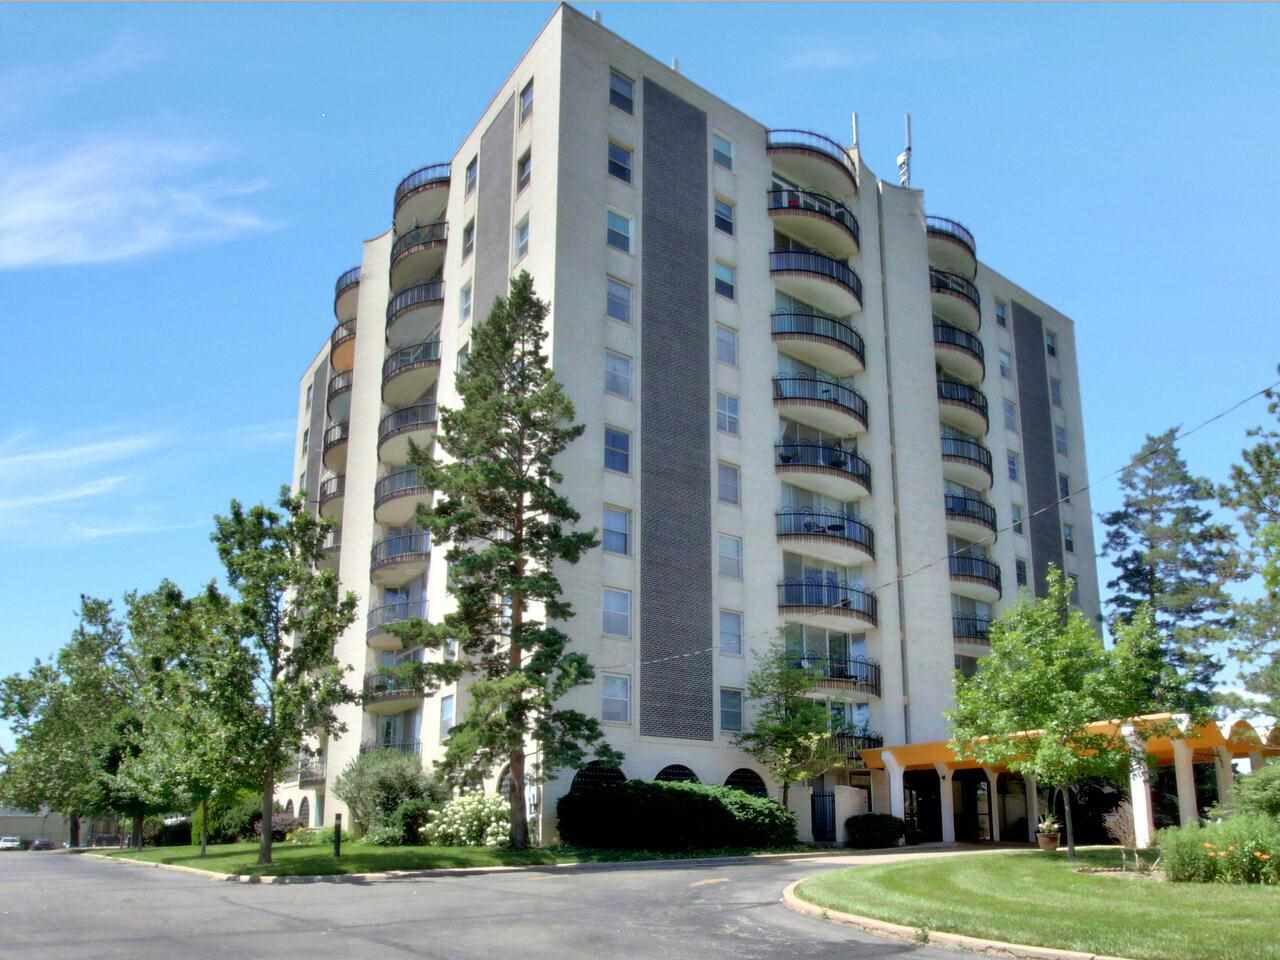 Beautiful Unit with updated bath & kitchen.  Sunny & Bright with open plan & neutral decor.  Move-in